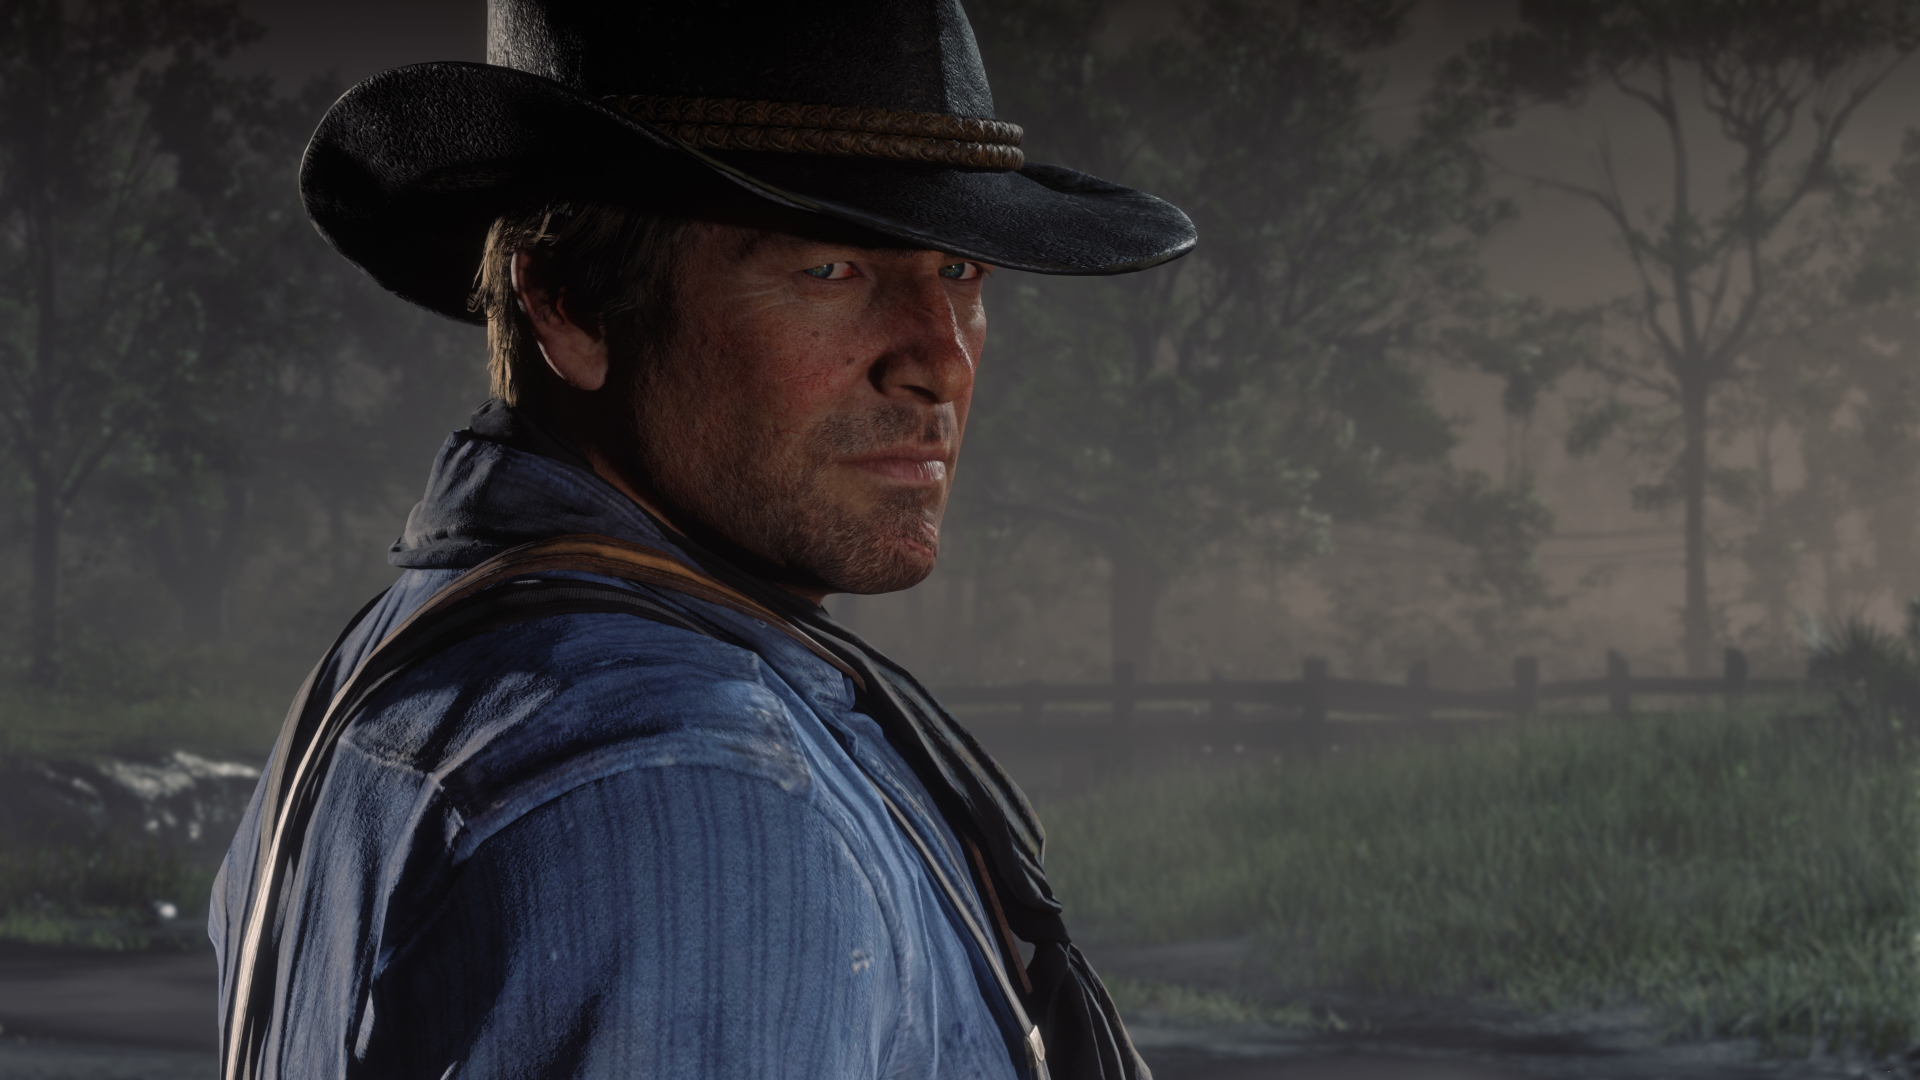 1920x1080 Red Dead Redemption 2 2019 1080p Laptop Full Hd